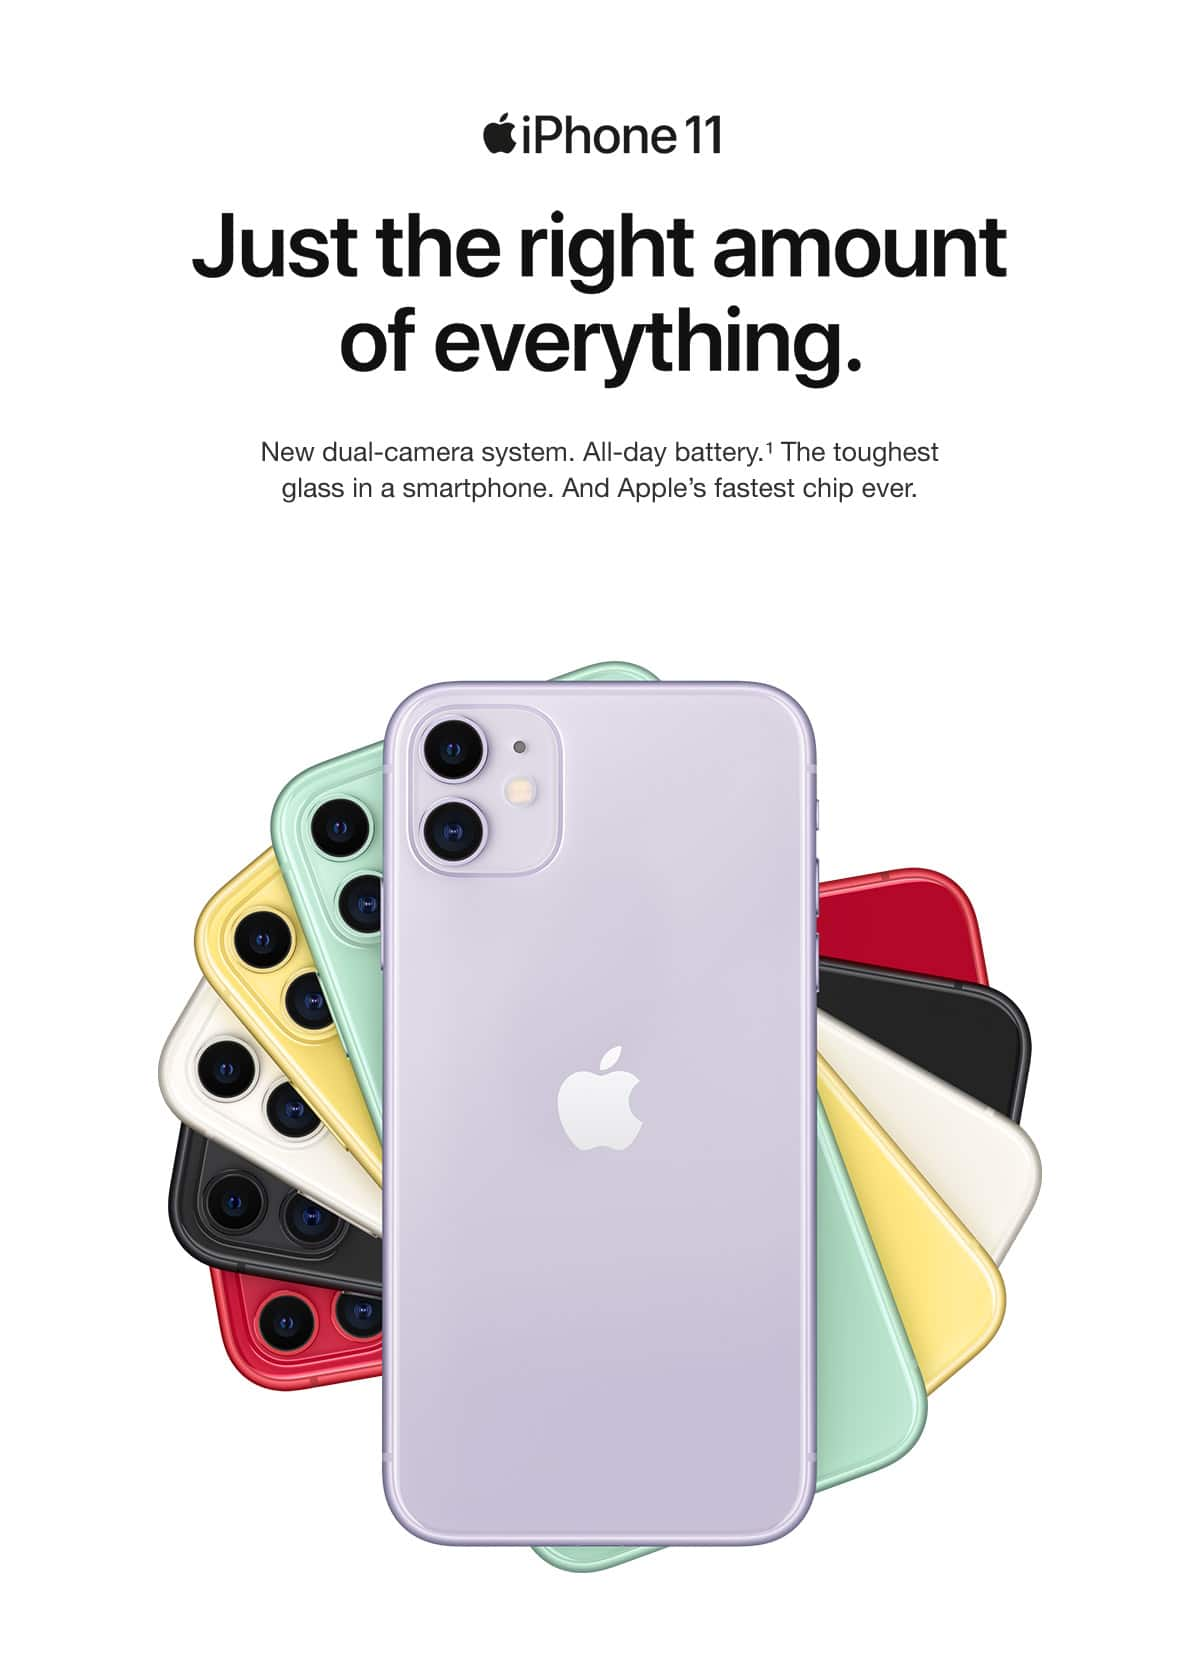 Sprint Now Part Of T Mobile Free Apple Iphone 11 Via 24 Monthly Bill Credits